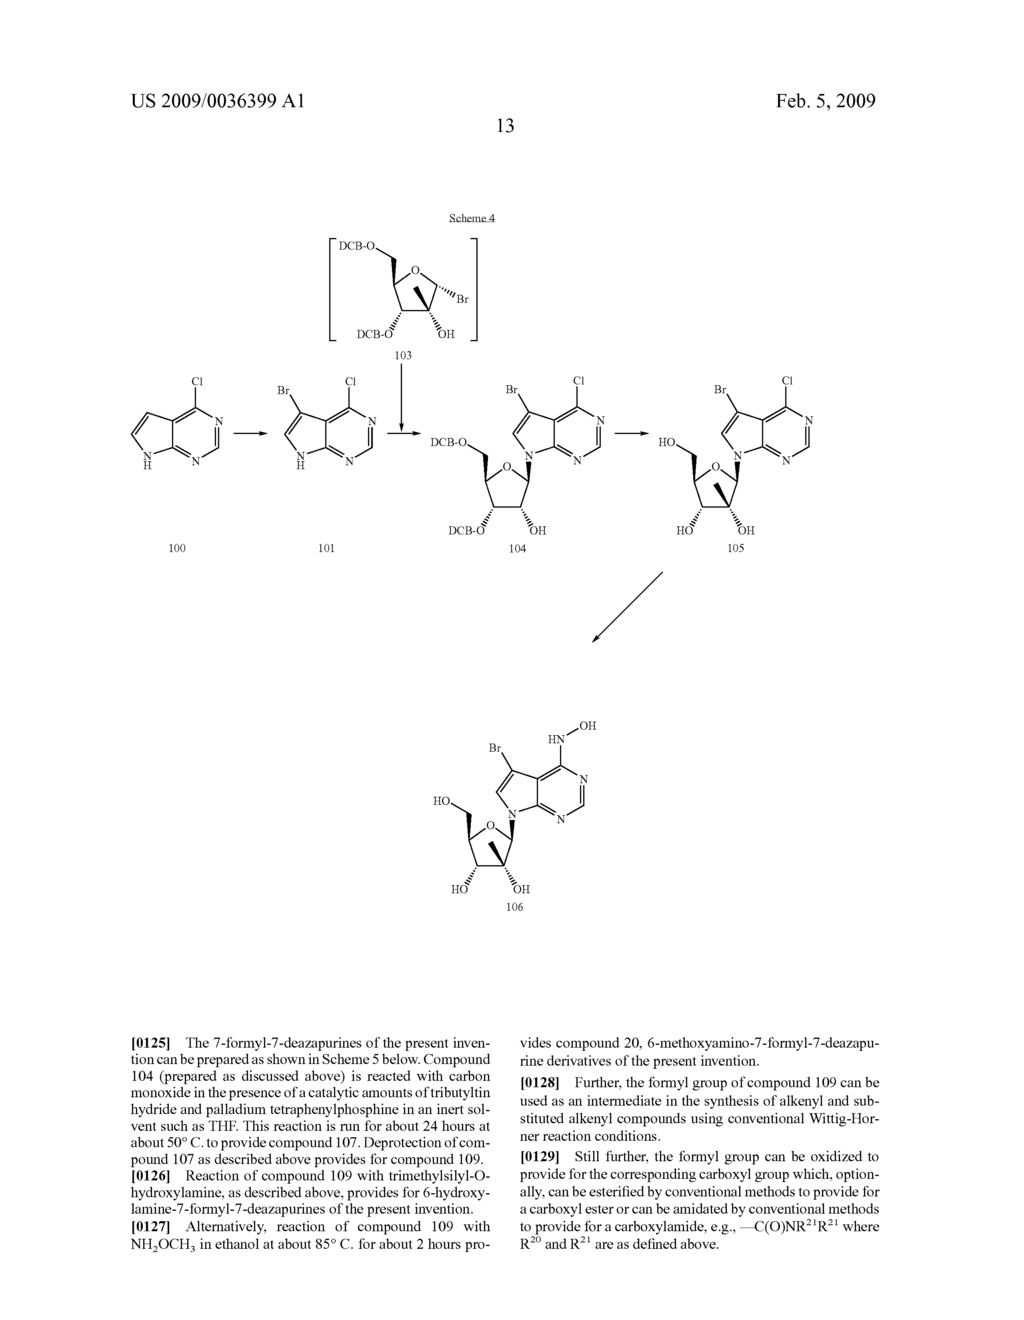 NUCLEOSIDE DERIVATIVES FOR TREATING HEPATITIS C VIRUS INFECTION - diagram, schematic, and image 14